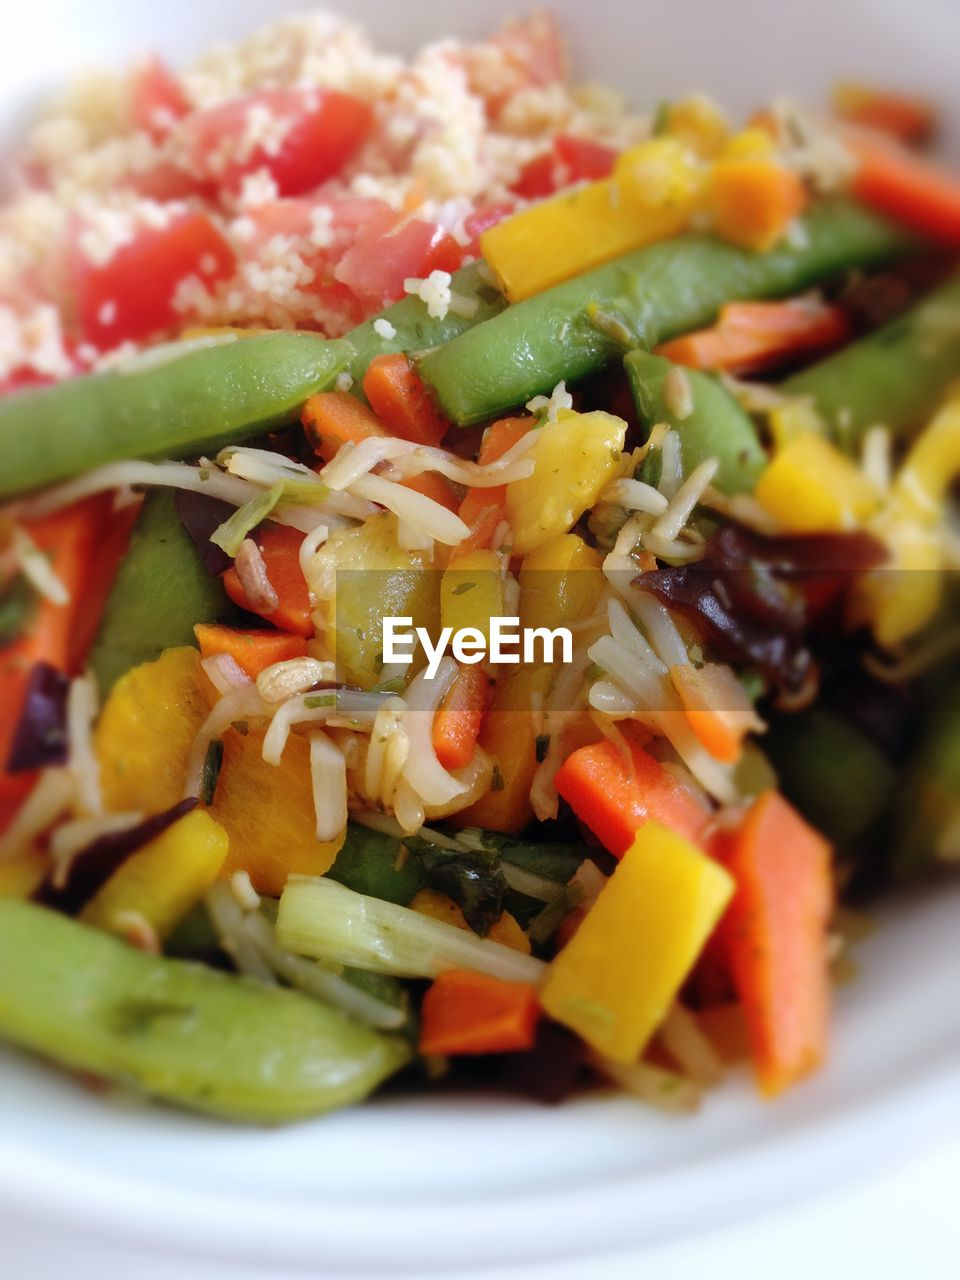 salad, vegetable, food, plate, food and drink, healthy eating, close-up, freshness, no people, indoors, ready-to-eat